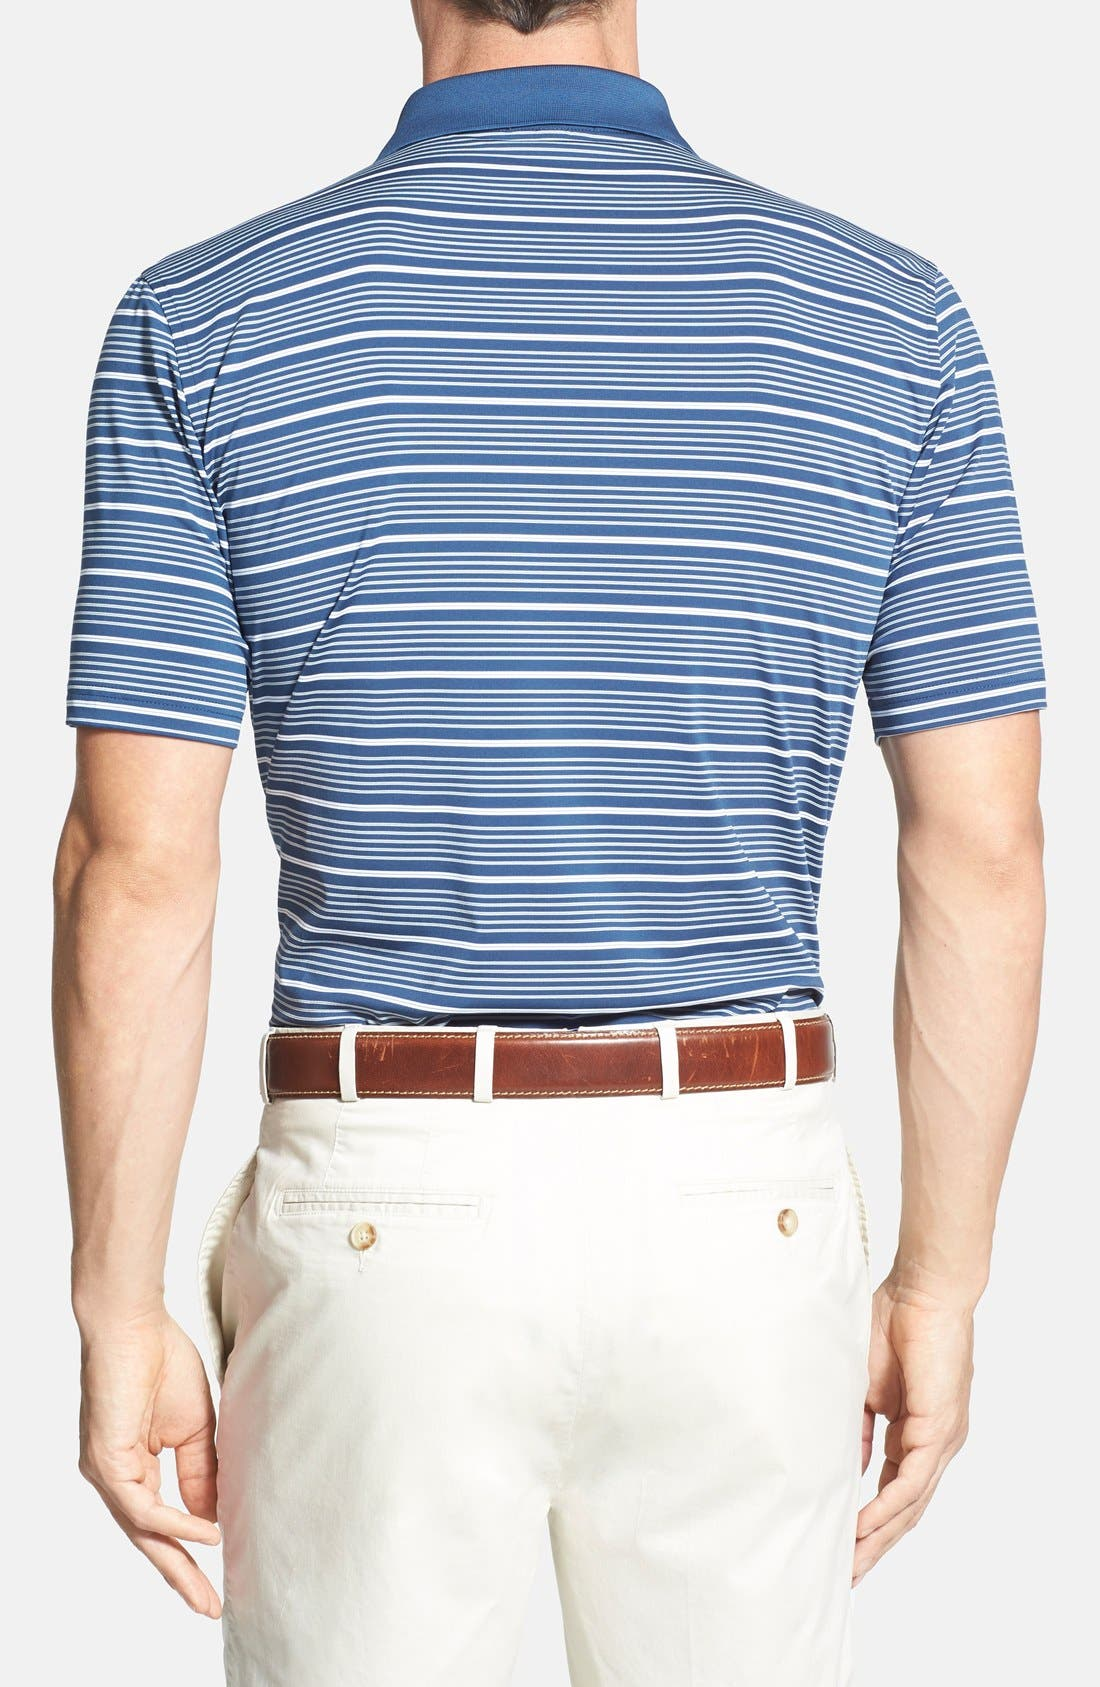 'Staley' Moisture Wicking Polo,                             Alternate thumbnail 5, color,